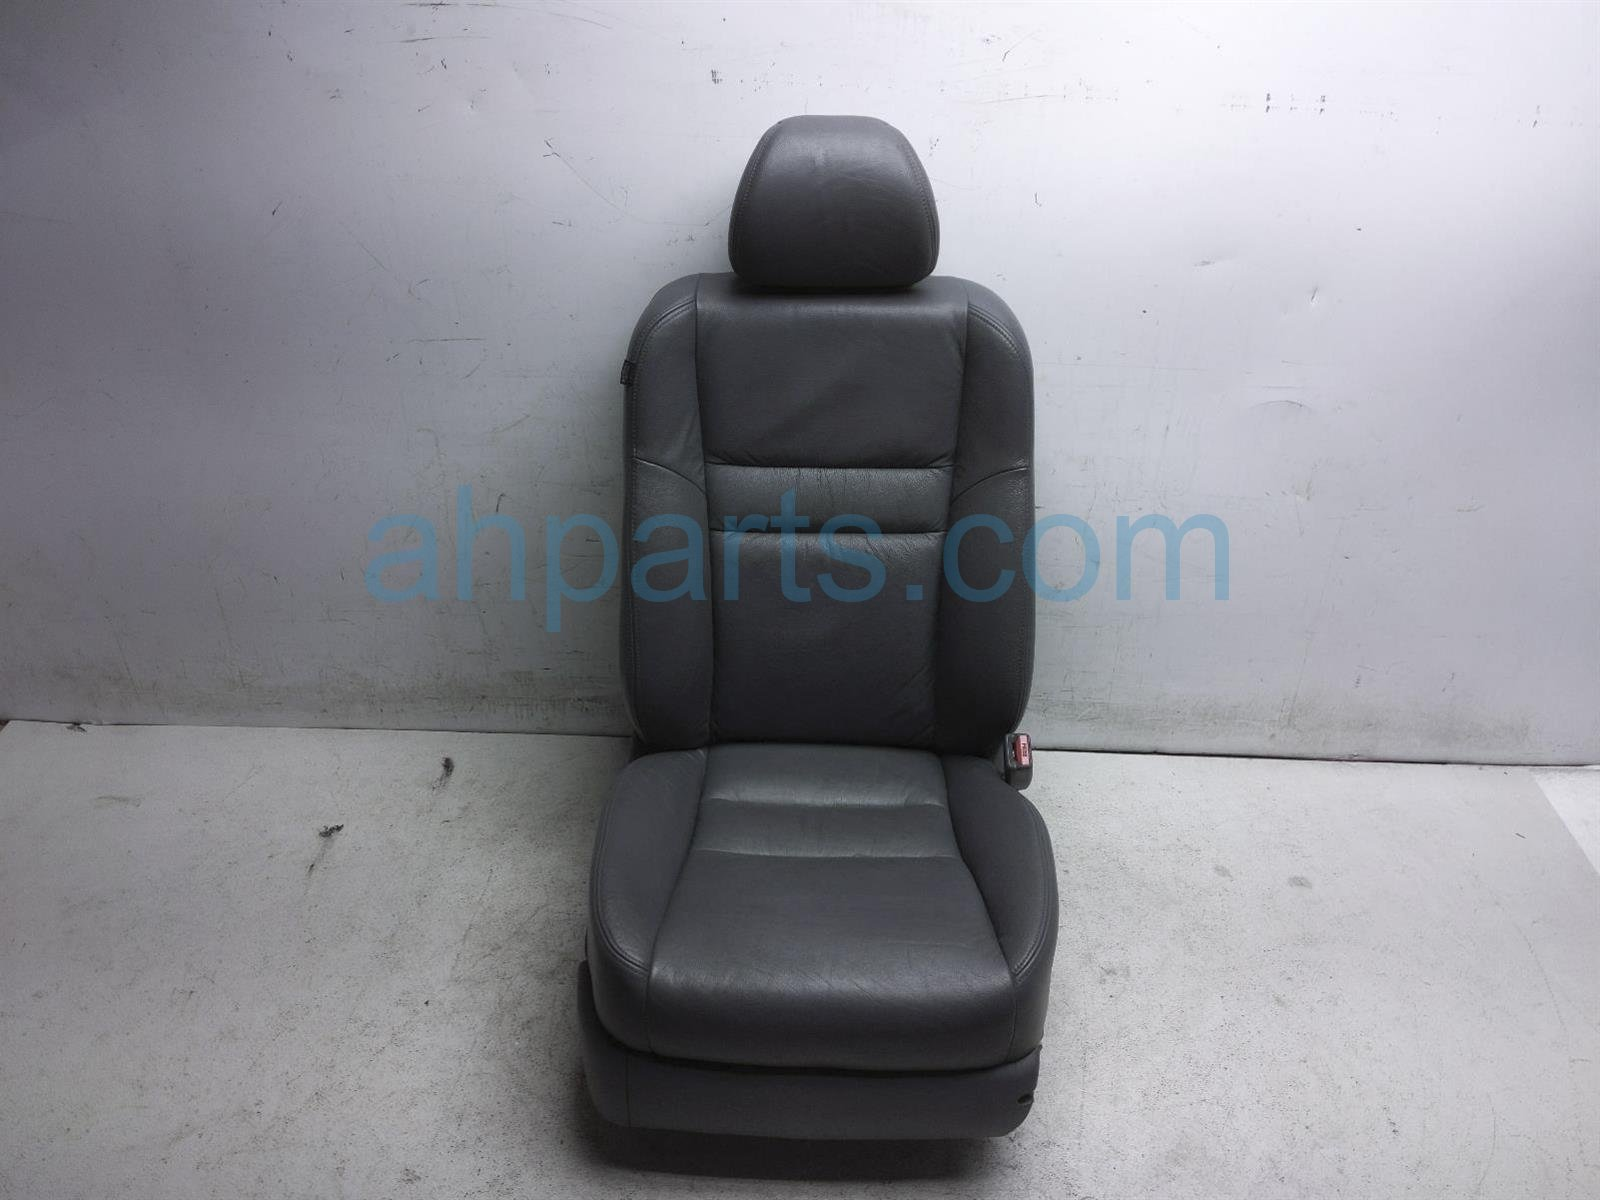 2007 Honda Accord Front Passenger Seat   Grey   W/o Airbag 81131 SDB L71ZB Replacement